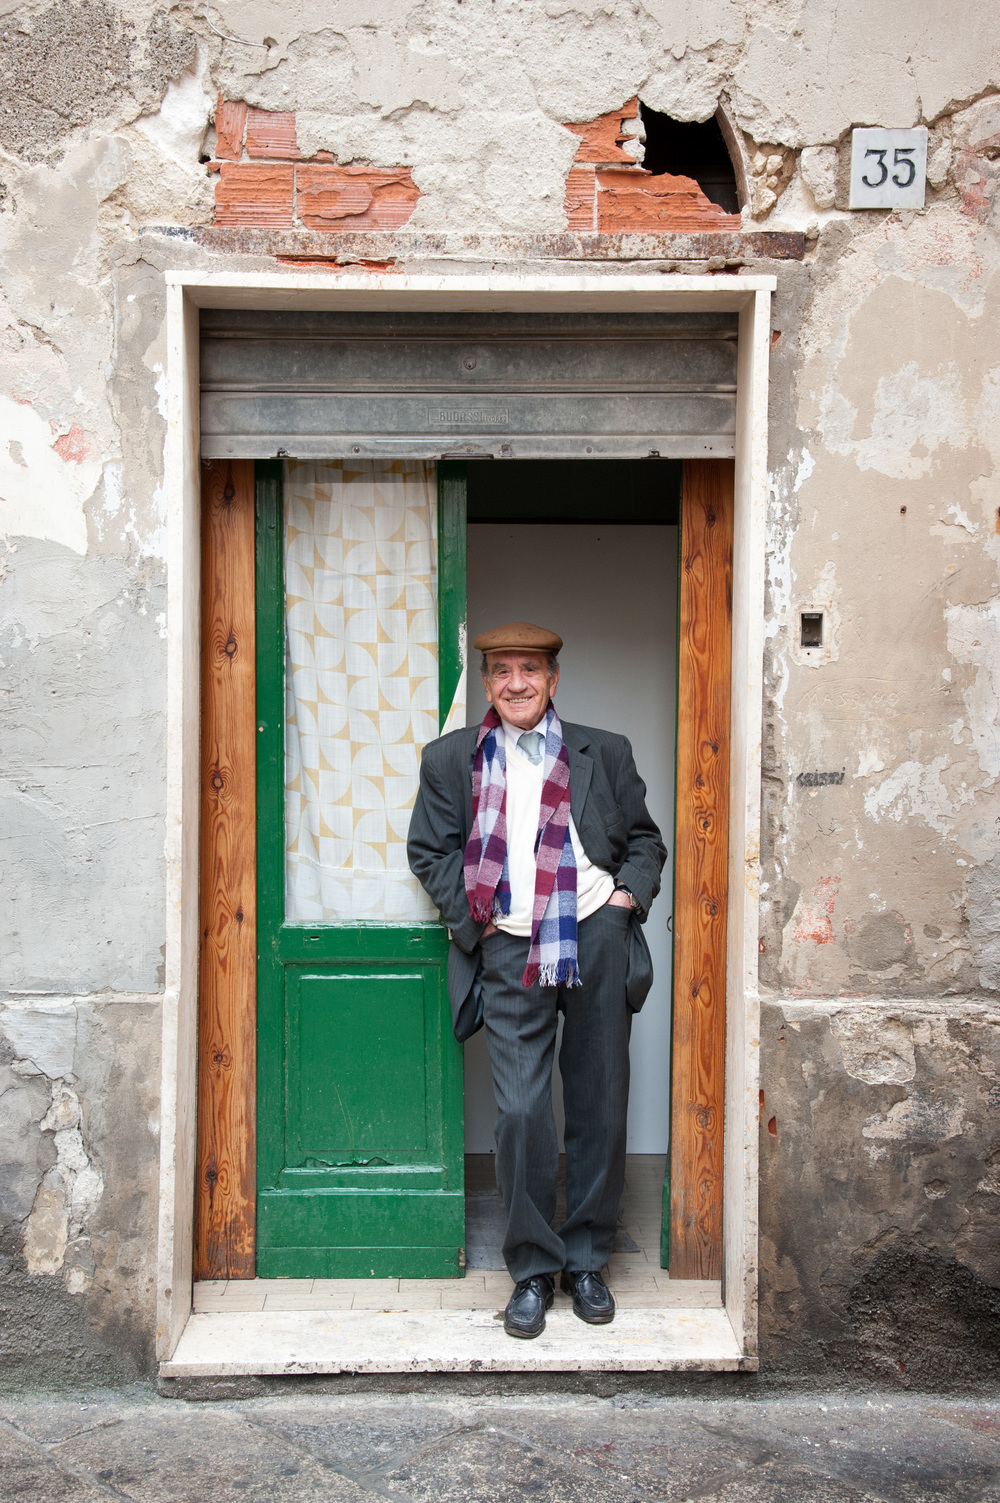 Barber on his shop doorstep, Sassari, Sardinia